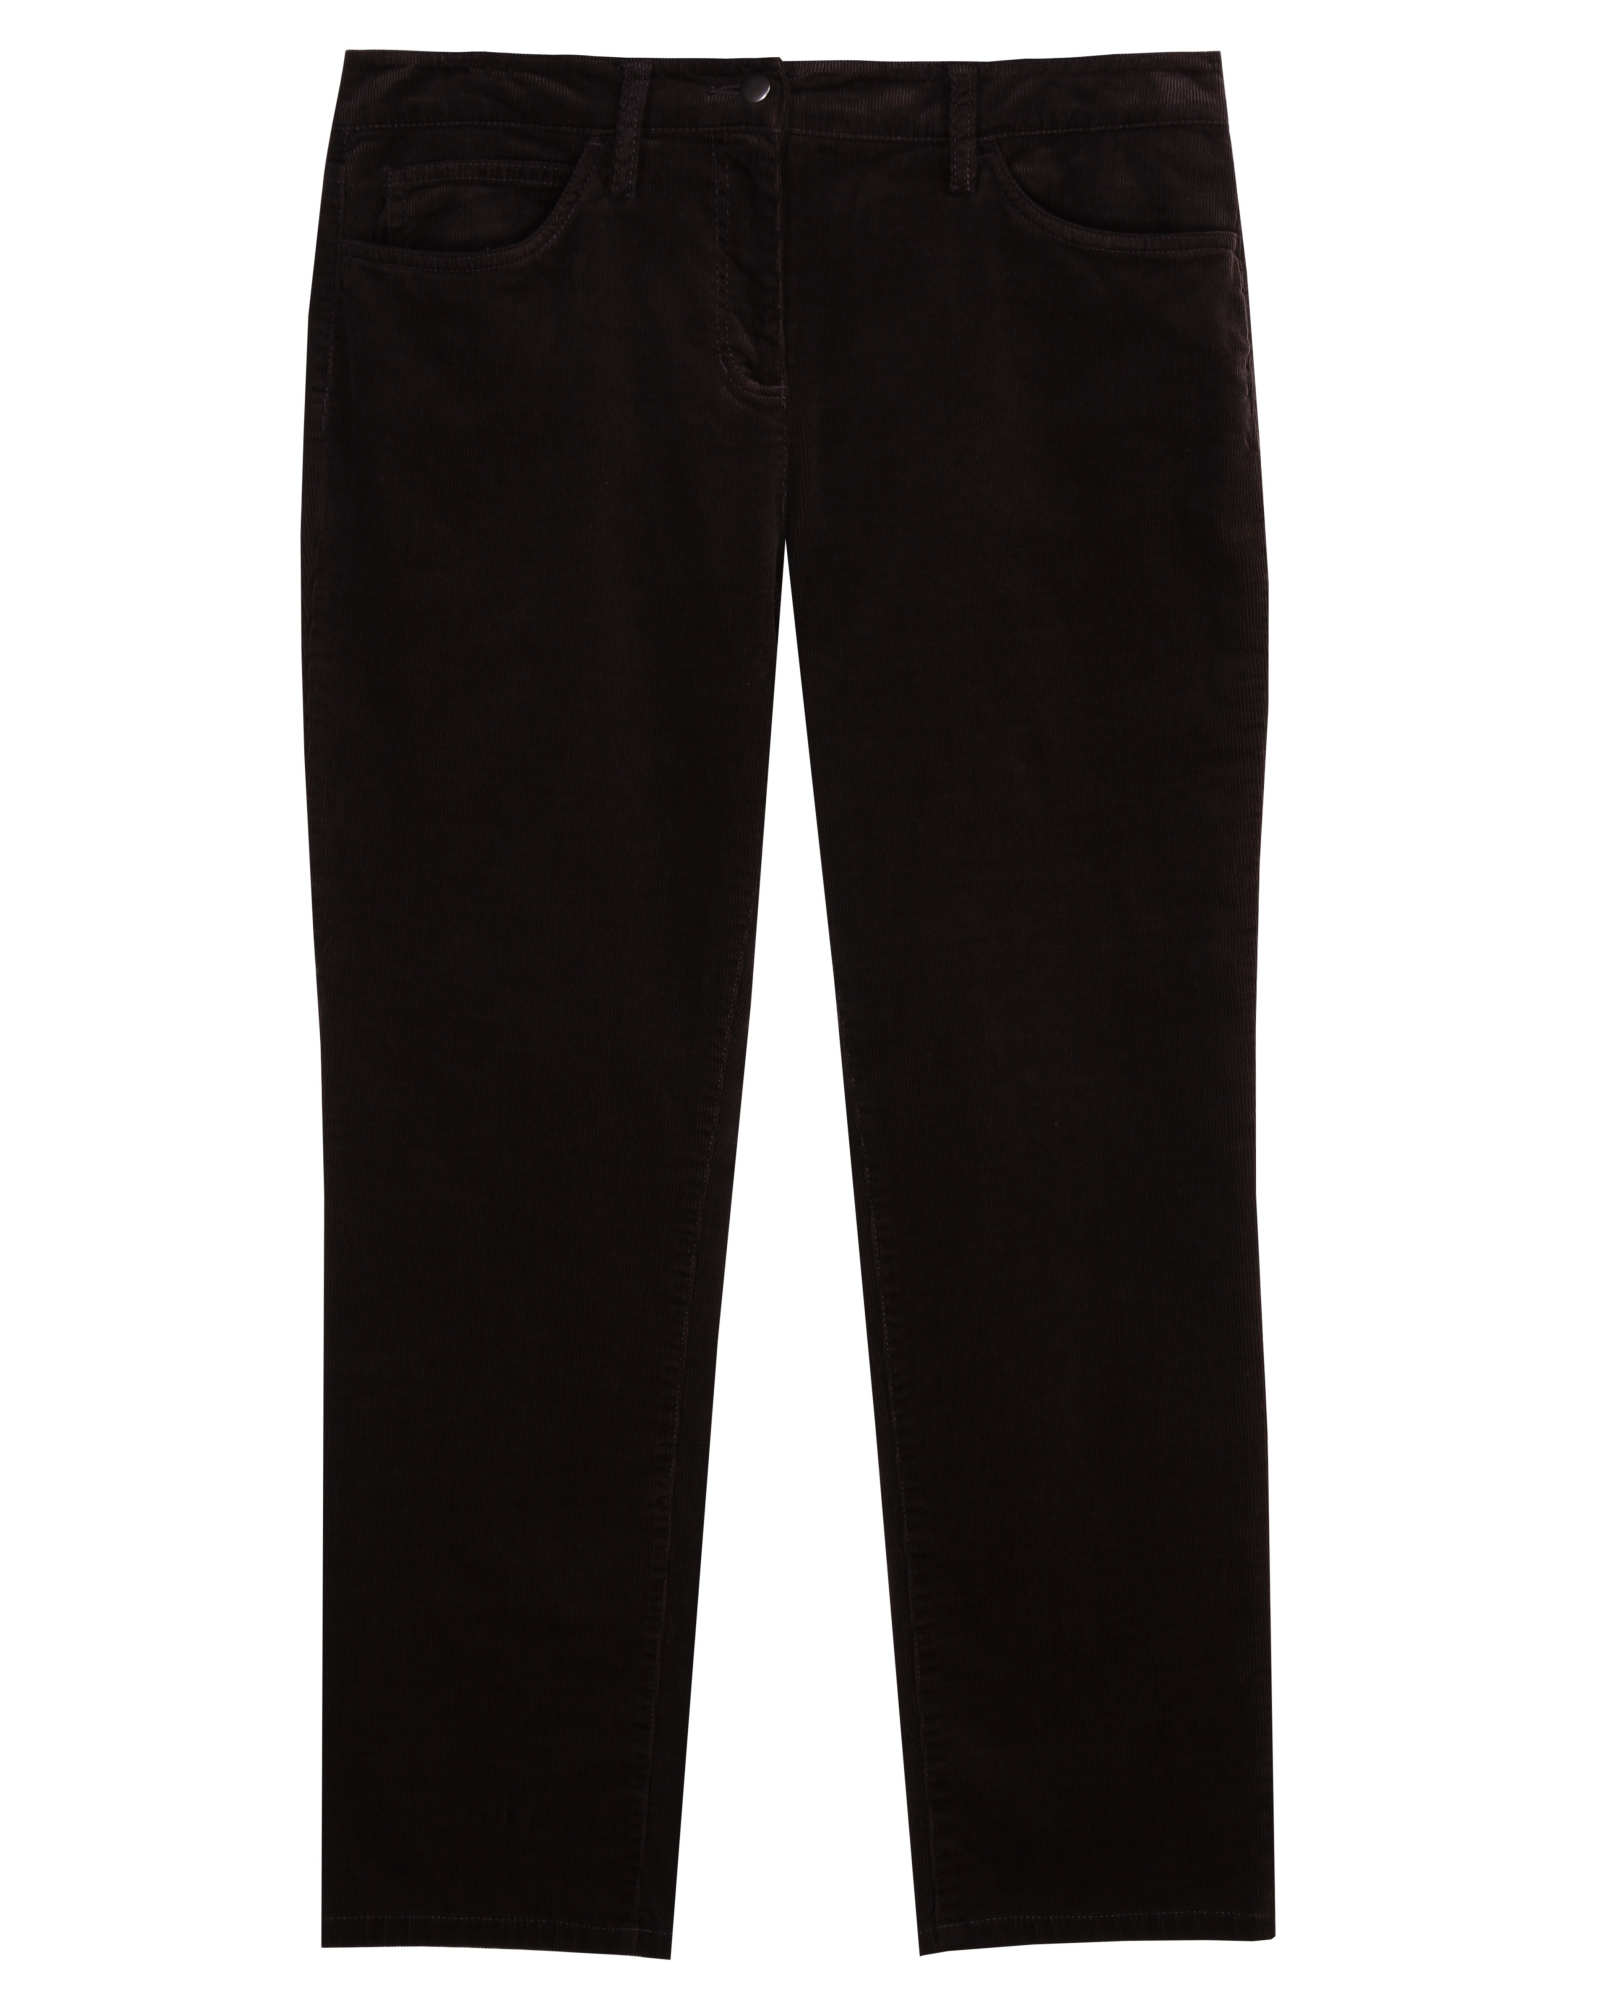 Cotton Tencel Stretch Corduroy Pant